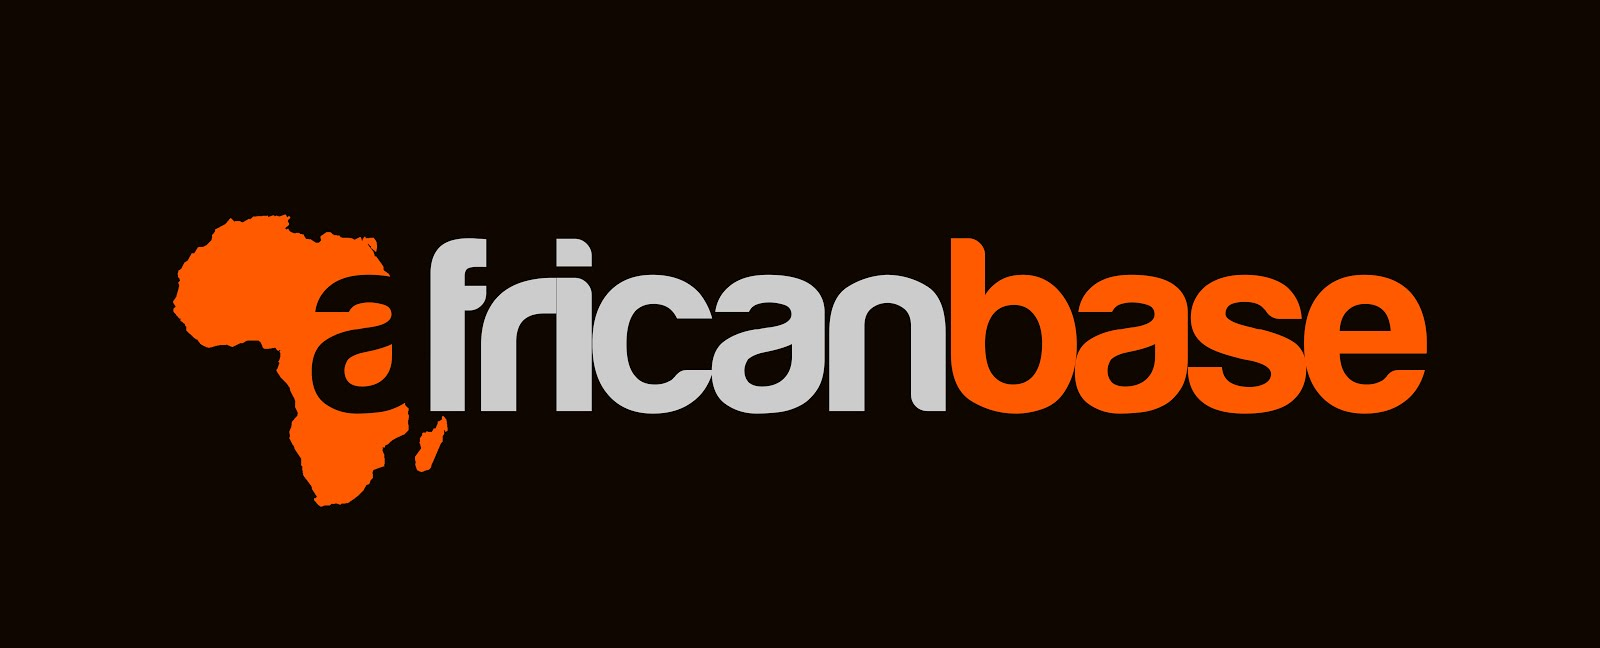 Africanbase Blog No#1 Entertainment, Music, News, Tech and Health Blog